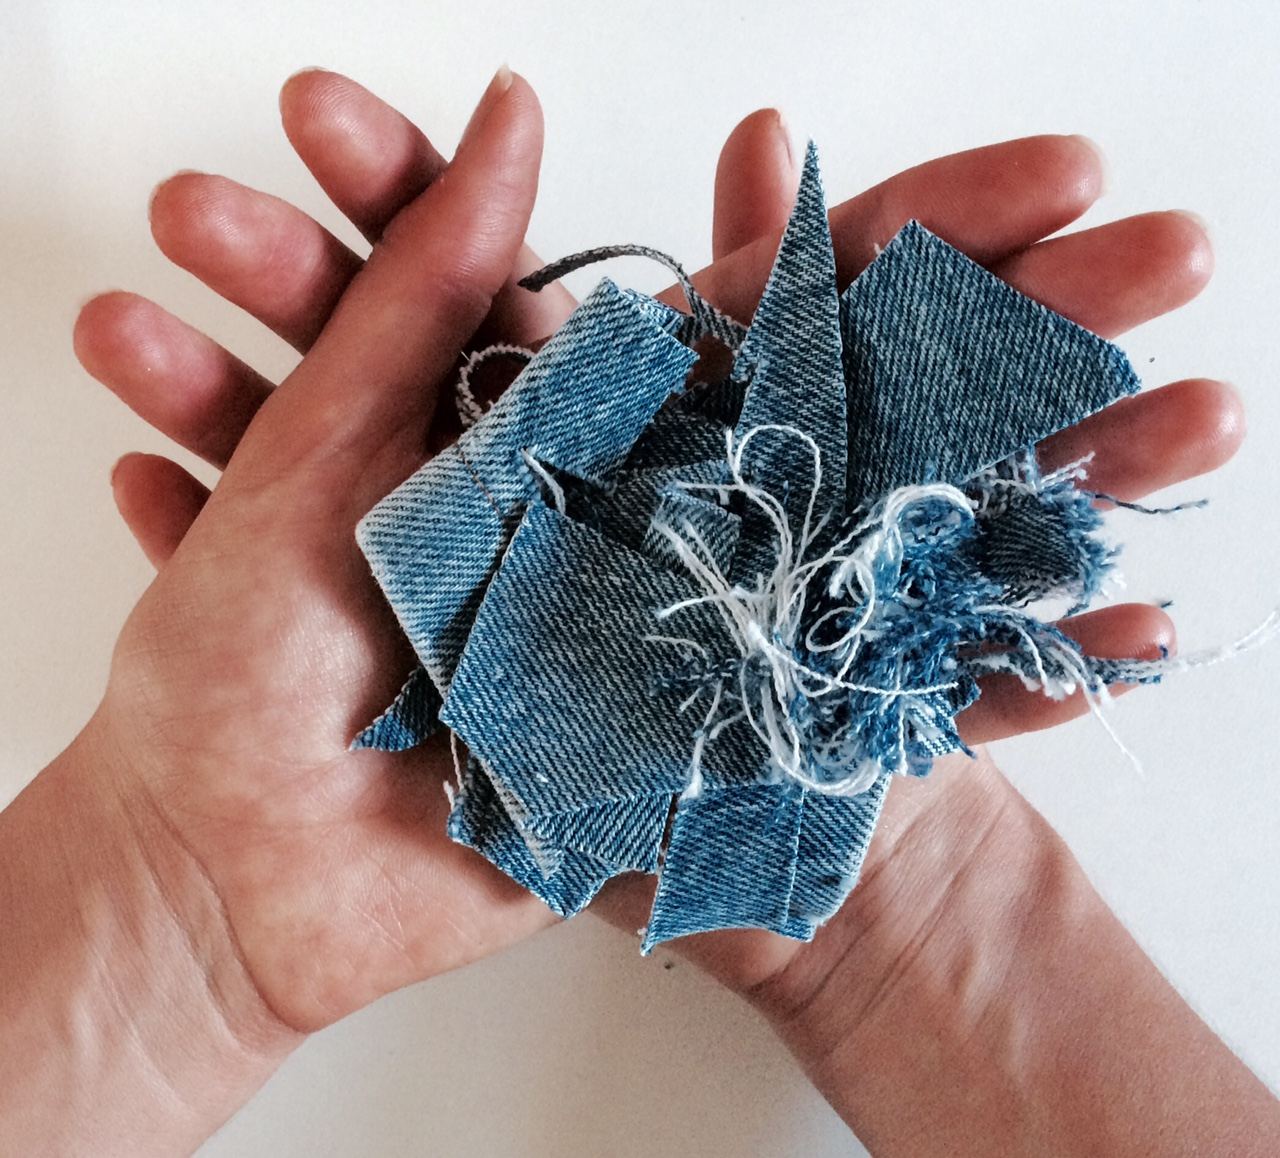 wylde-recyclage-denim-bits-recycled